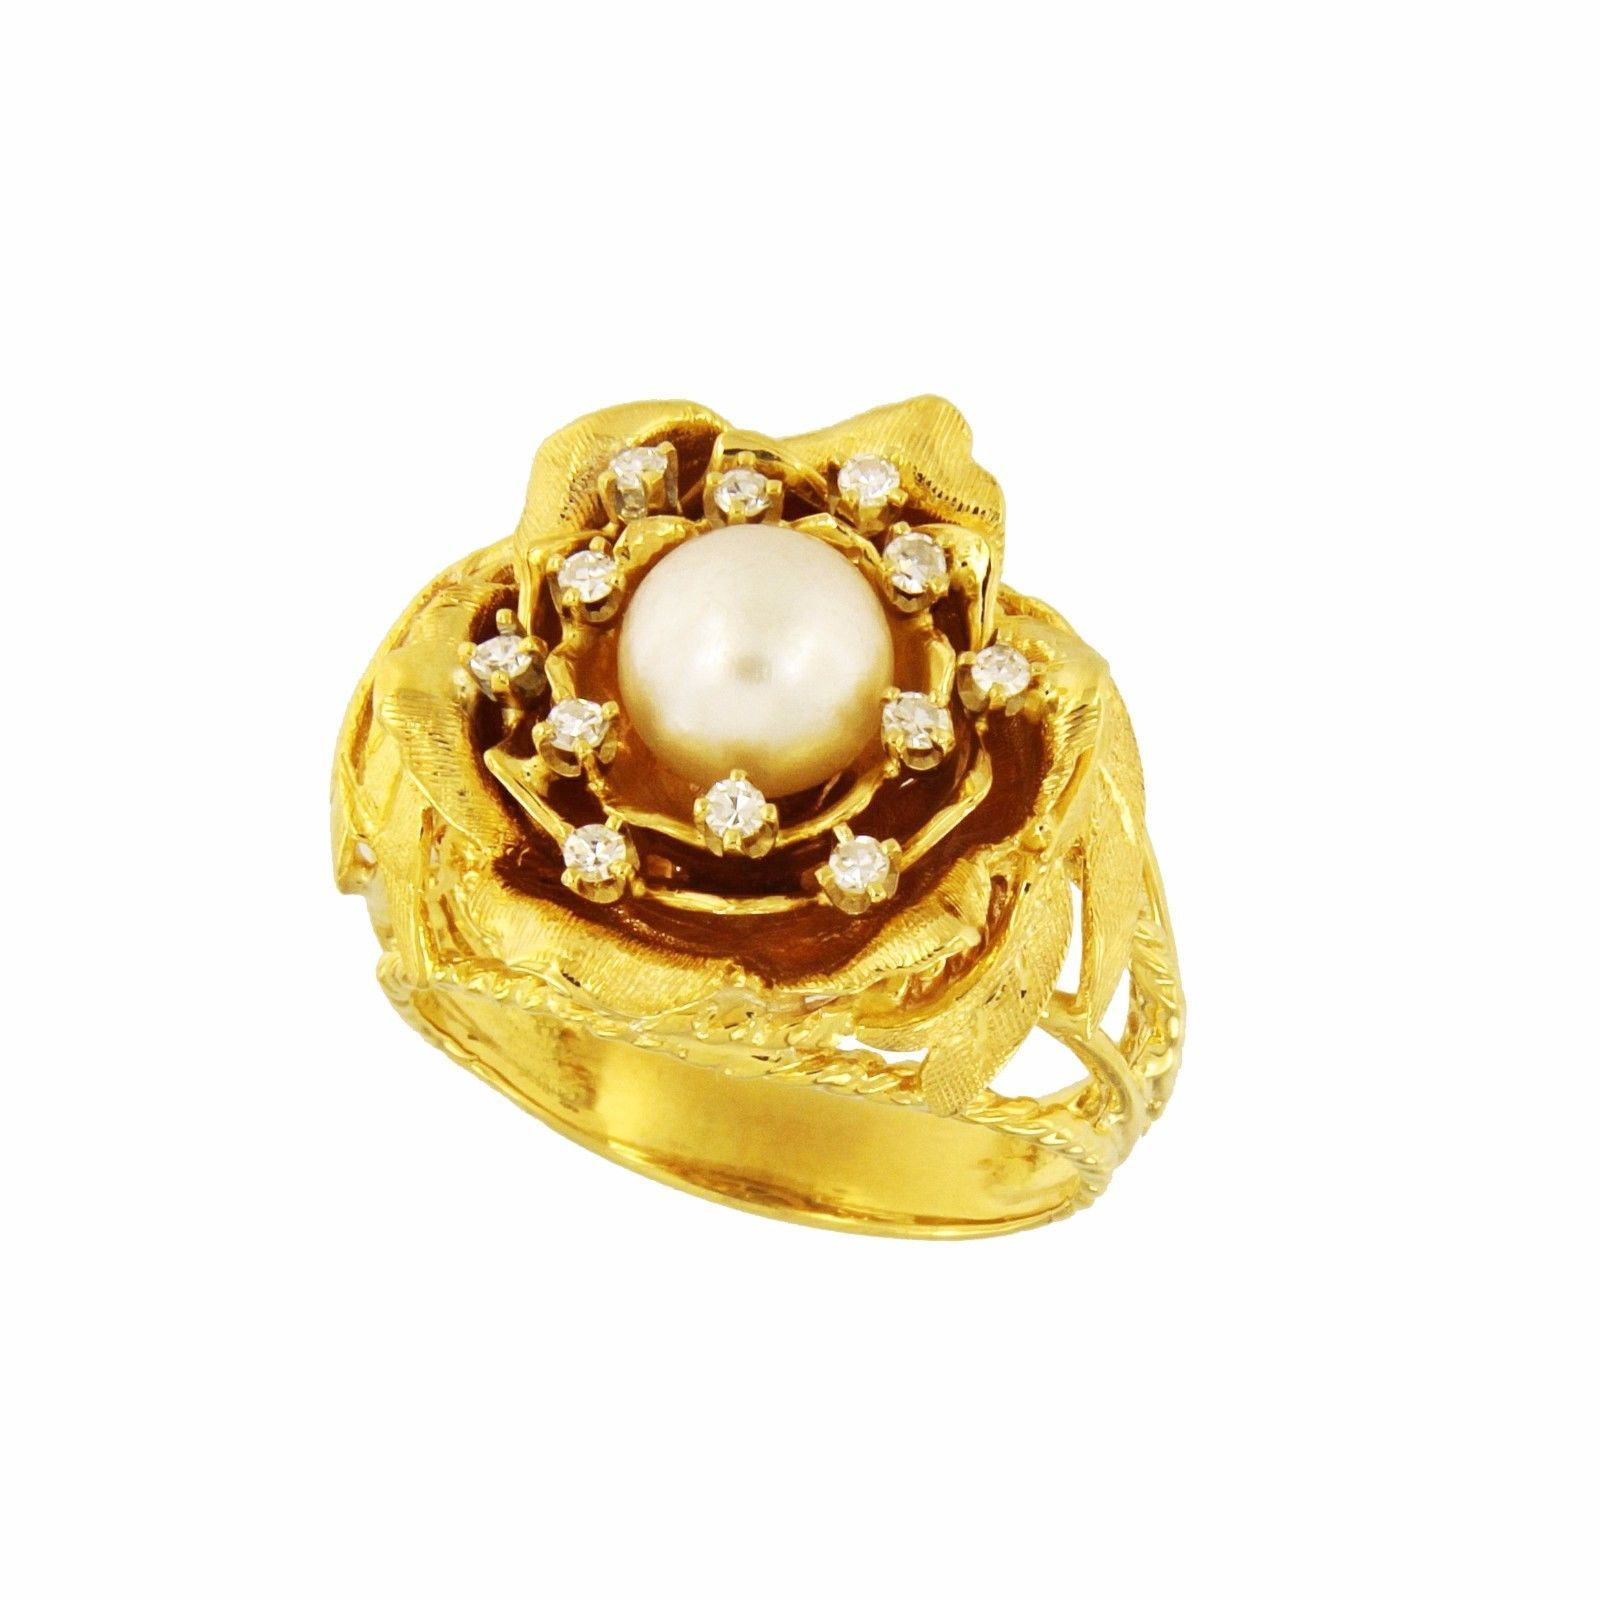 Antique Vintage Hand-Made 18k Gold Diamond Natural Pearl Ring